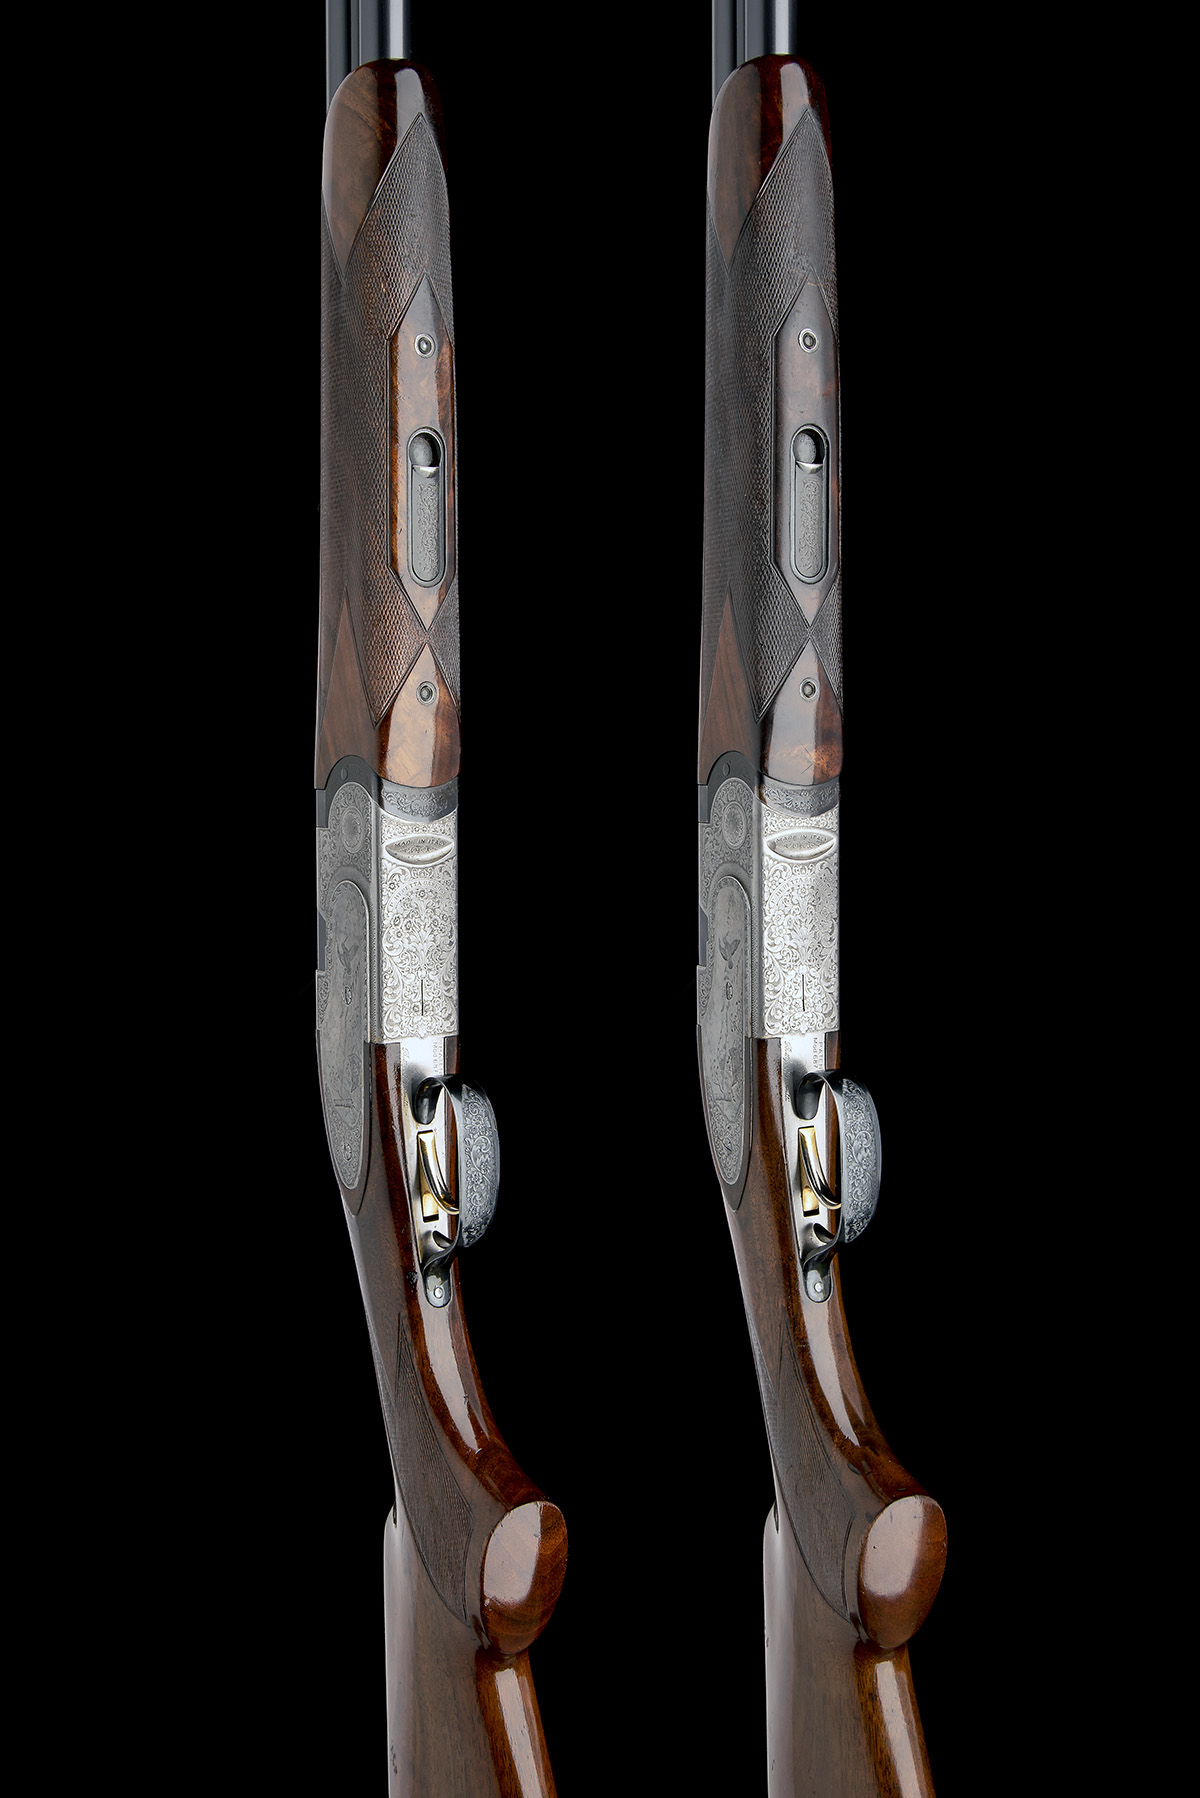 P. BERETTA A PAIR OF 20-BORE 'MOD. 687 EELL' SINGLE-TRIGGER OVER AND UNDER EJECTORS, serial no. - Image 3 of 10